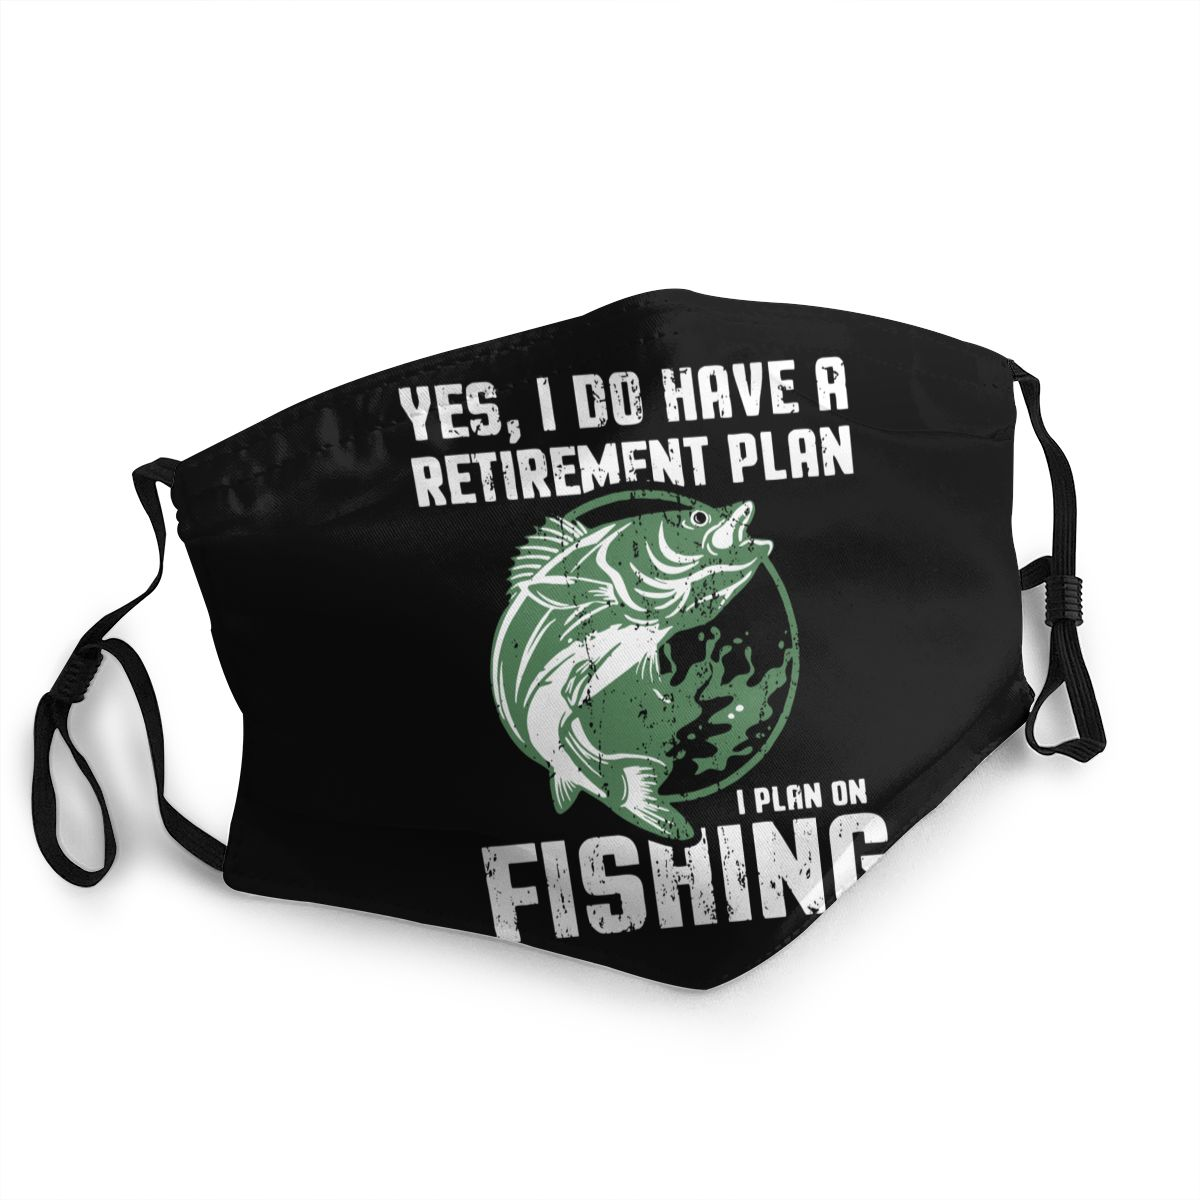 Retirement Plan On Fishing Adult Reusable Mouth Face Mask Anti Bacterial Dustproof Protection Cover Respirator image